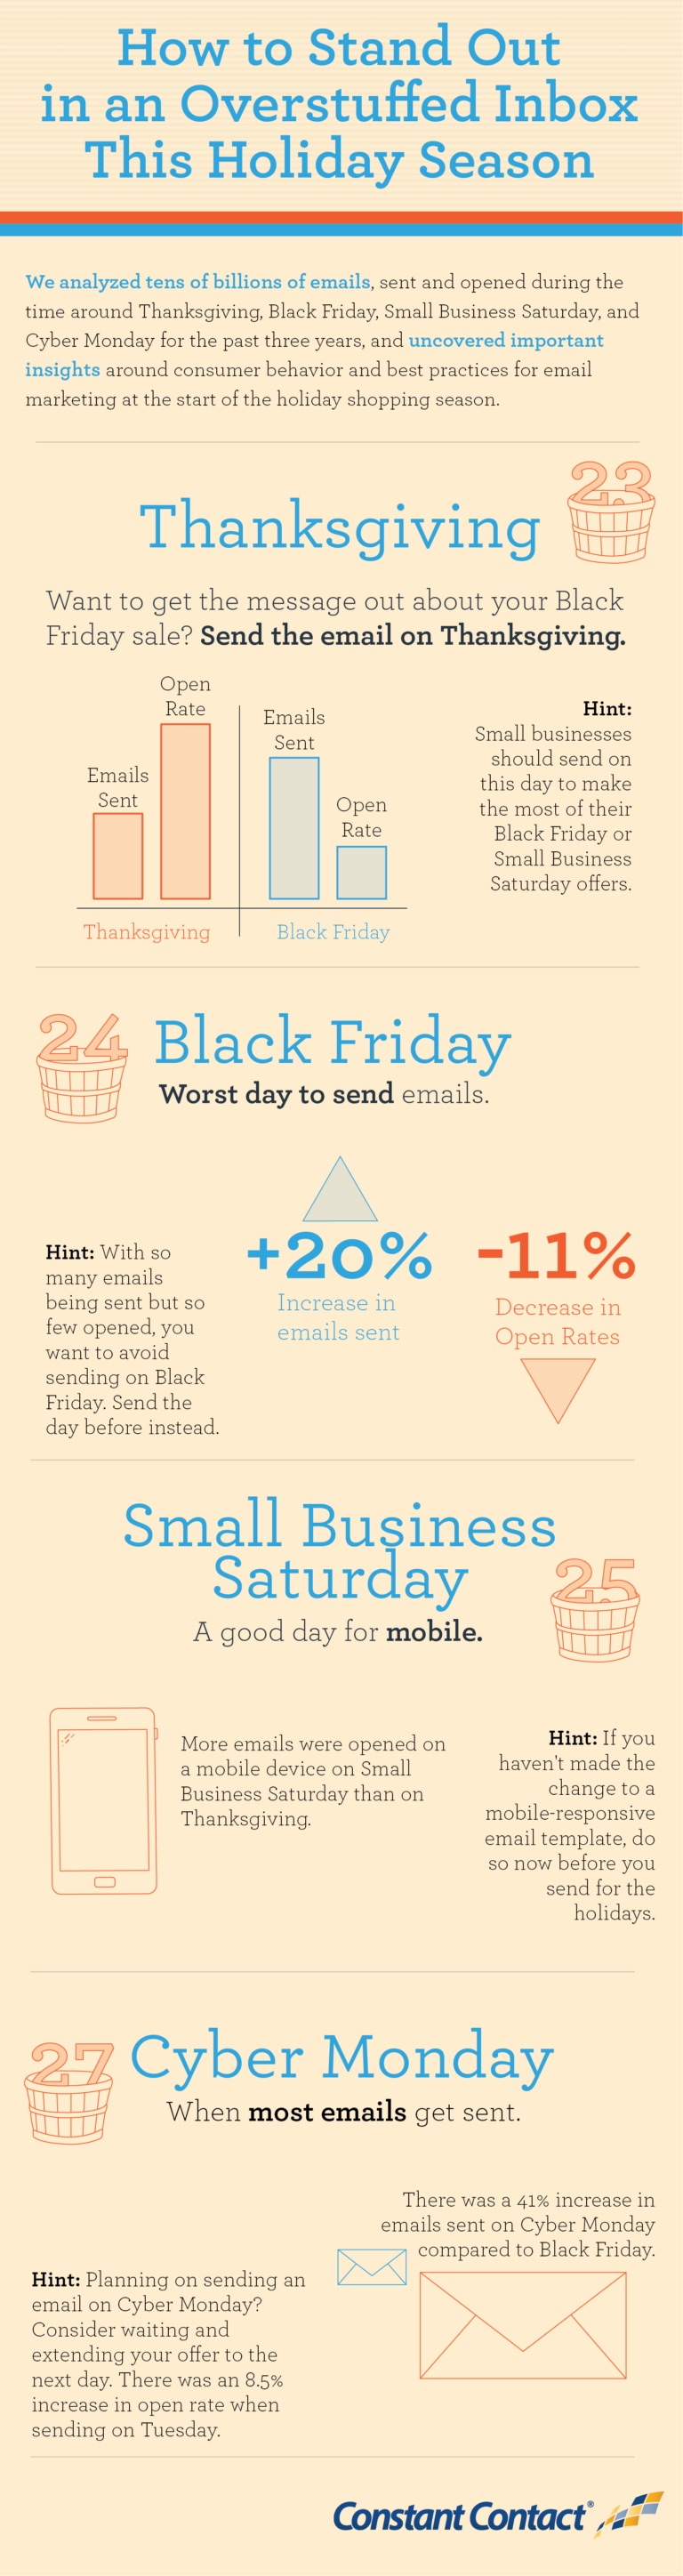 Scheduling Your Email Marketing on Thanksgiving Day Itself is More Effective